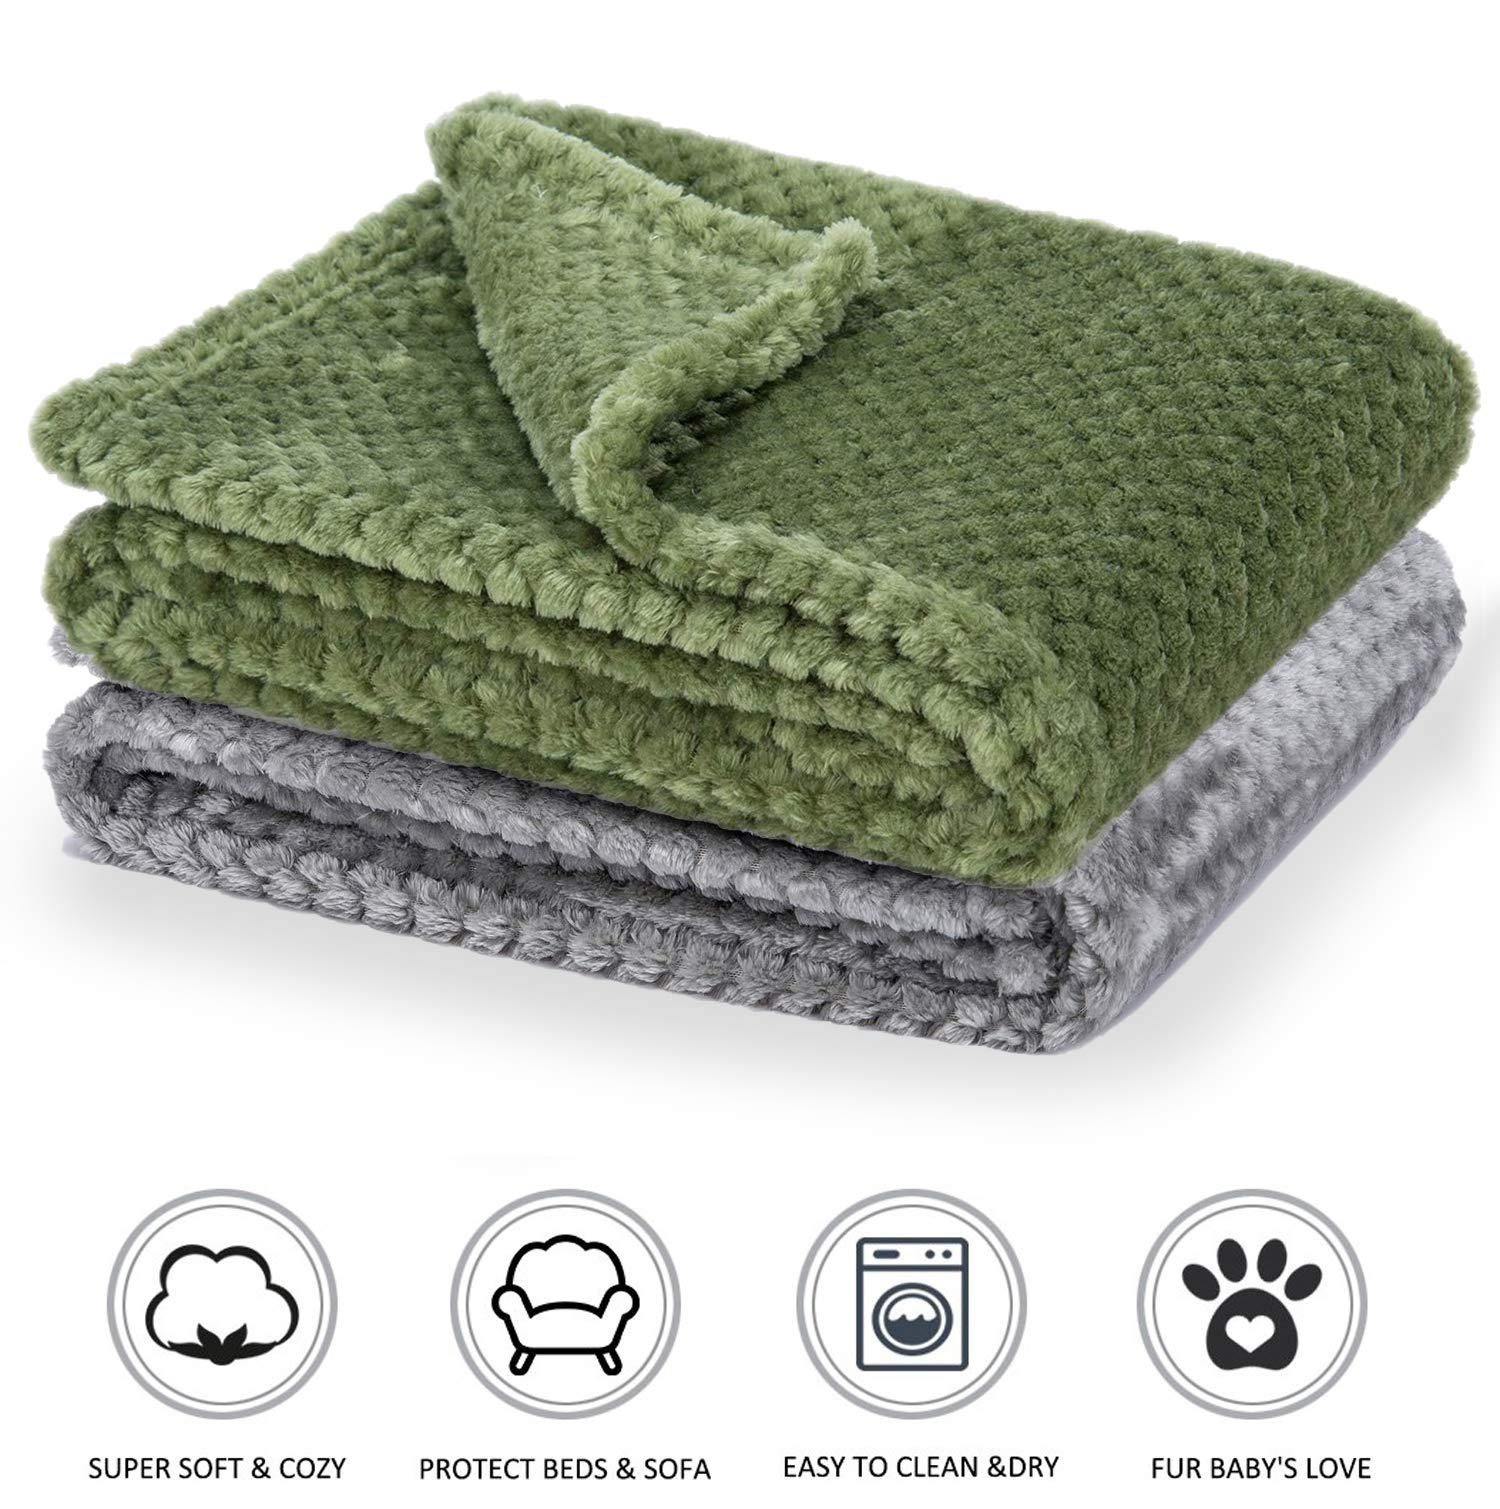 Fluffy Pet Snuggle Blanket and Throw 40×28 Inches Soft and Warm Cozy Coral Fleece Mat for Dogs & Cats- Pack of 2